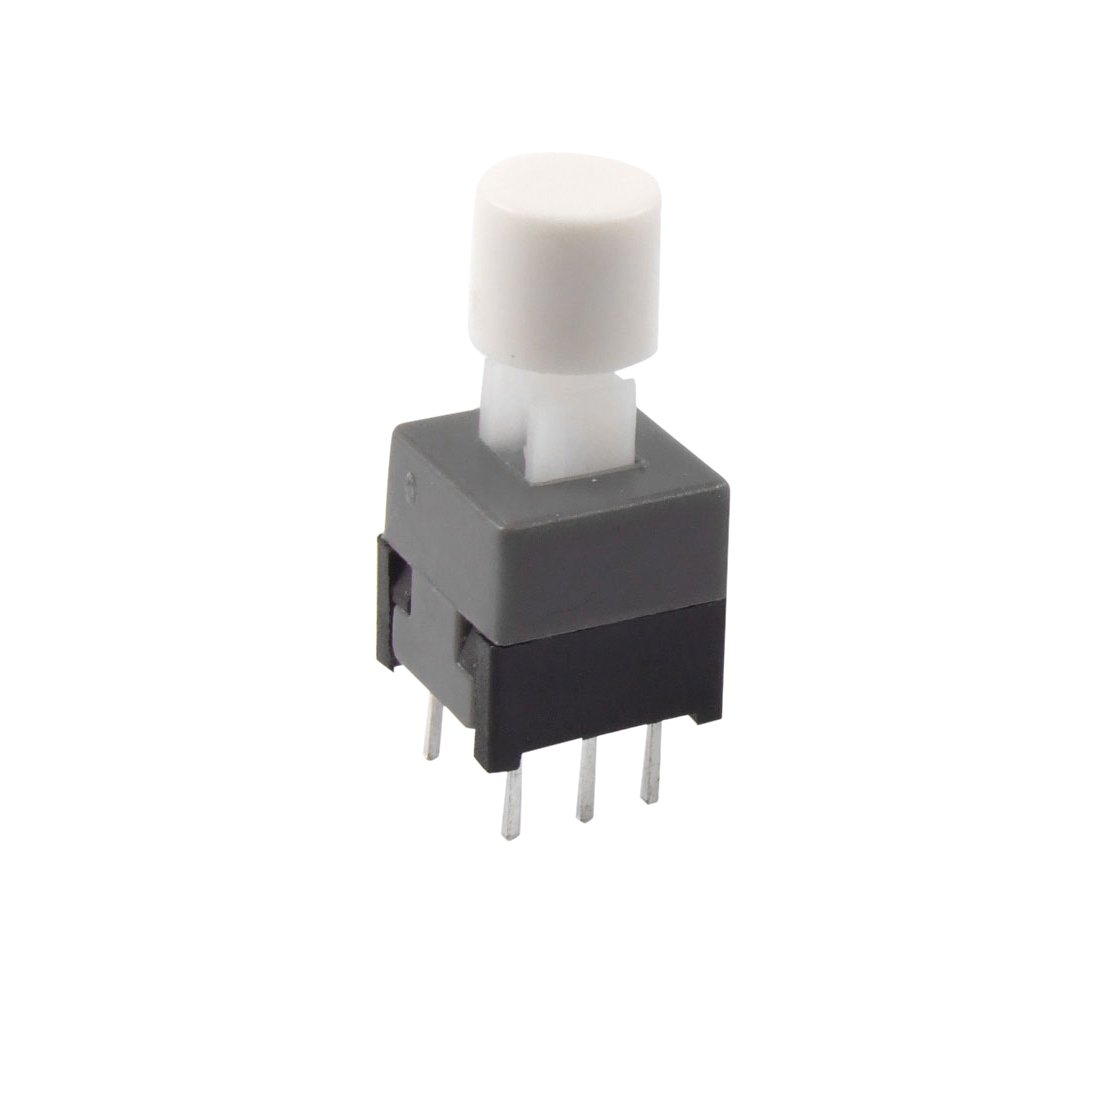 Uxcell 6-Pin Self Lock Tactile Push Button Switch, 8.5 x 8.5 x 14mm